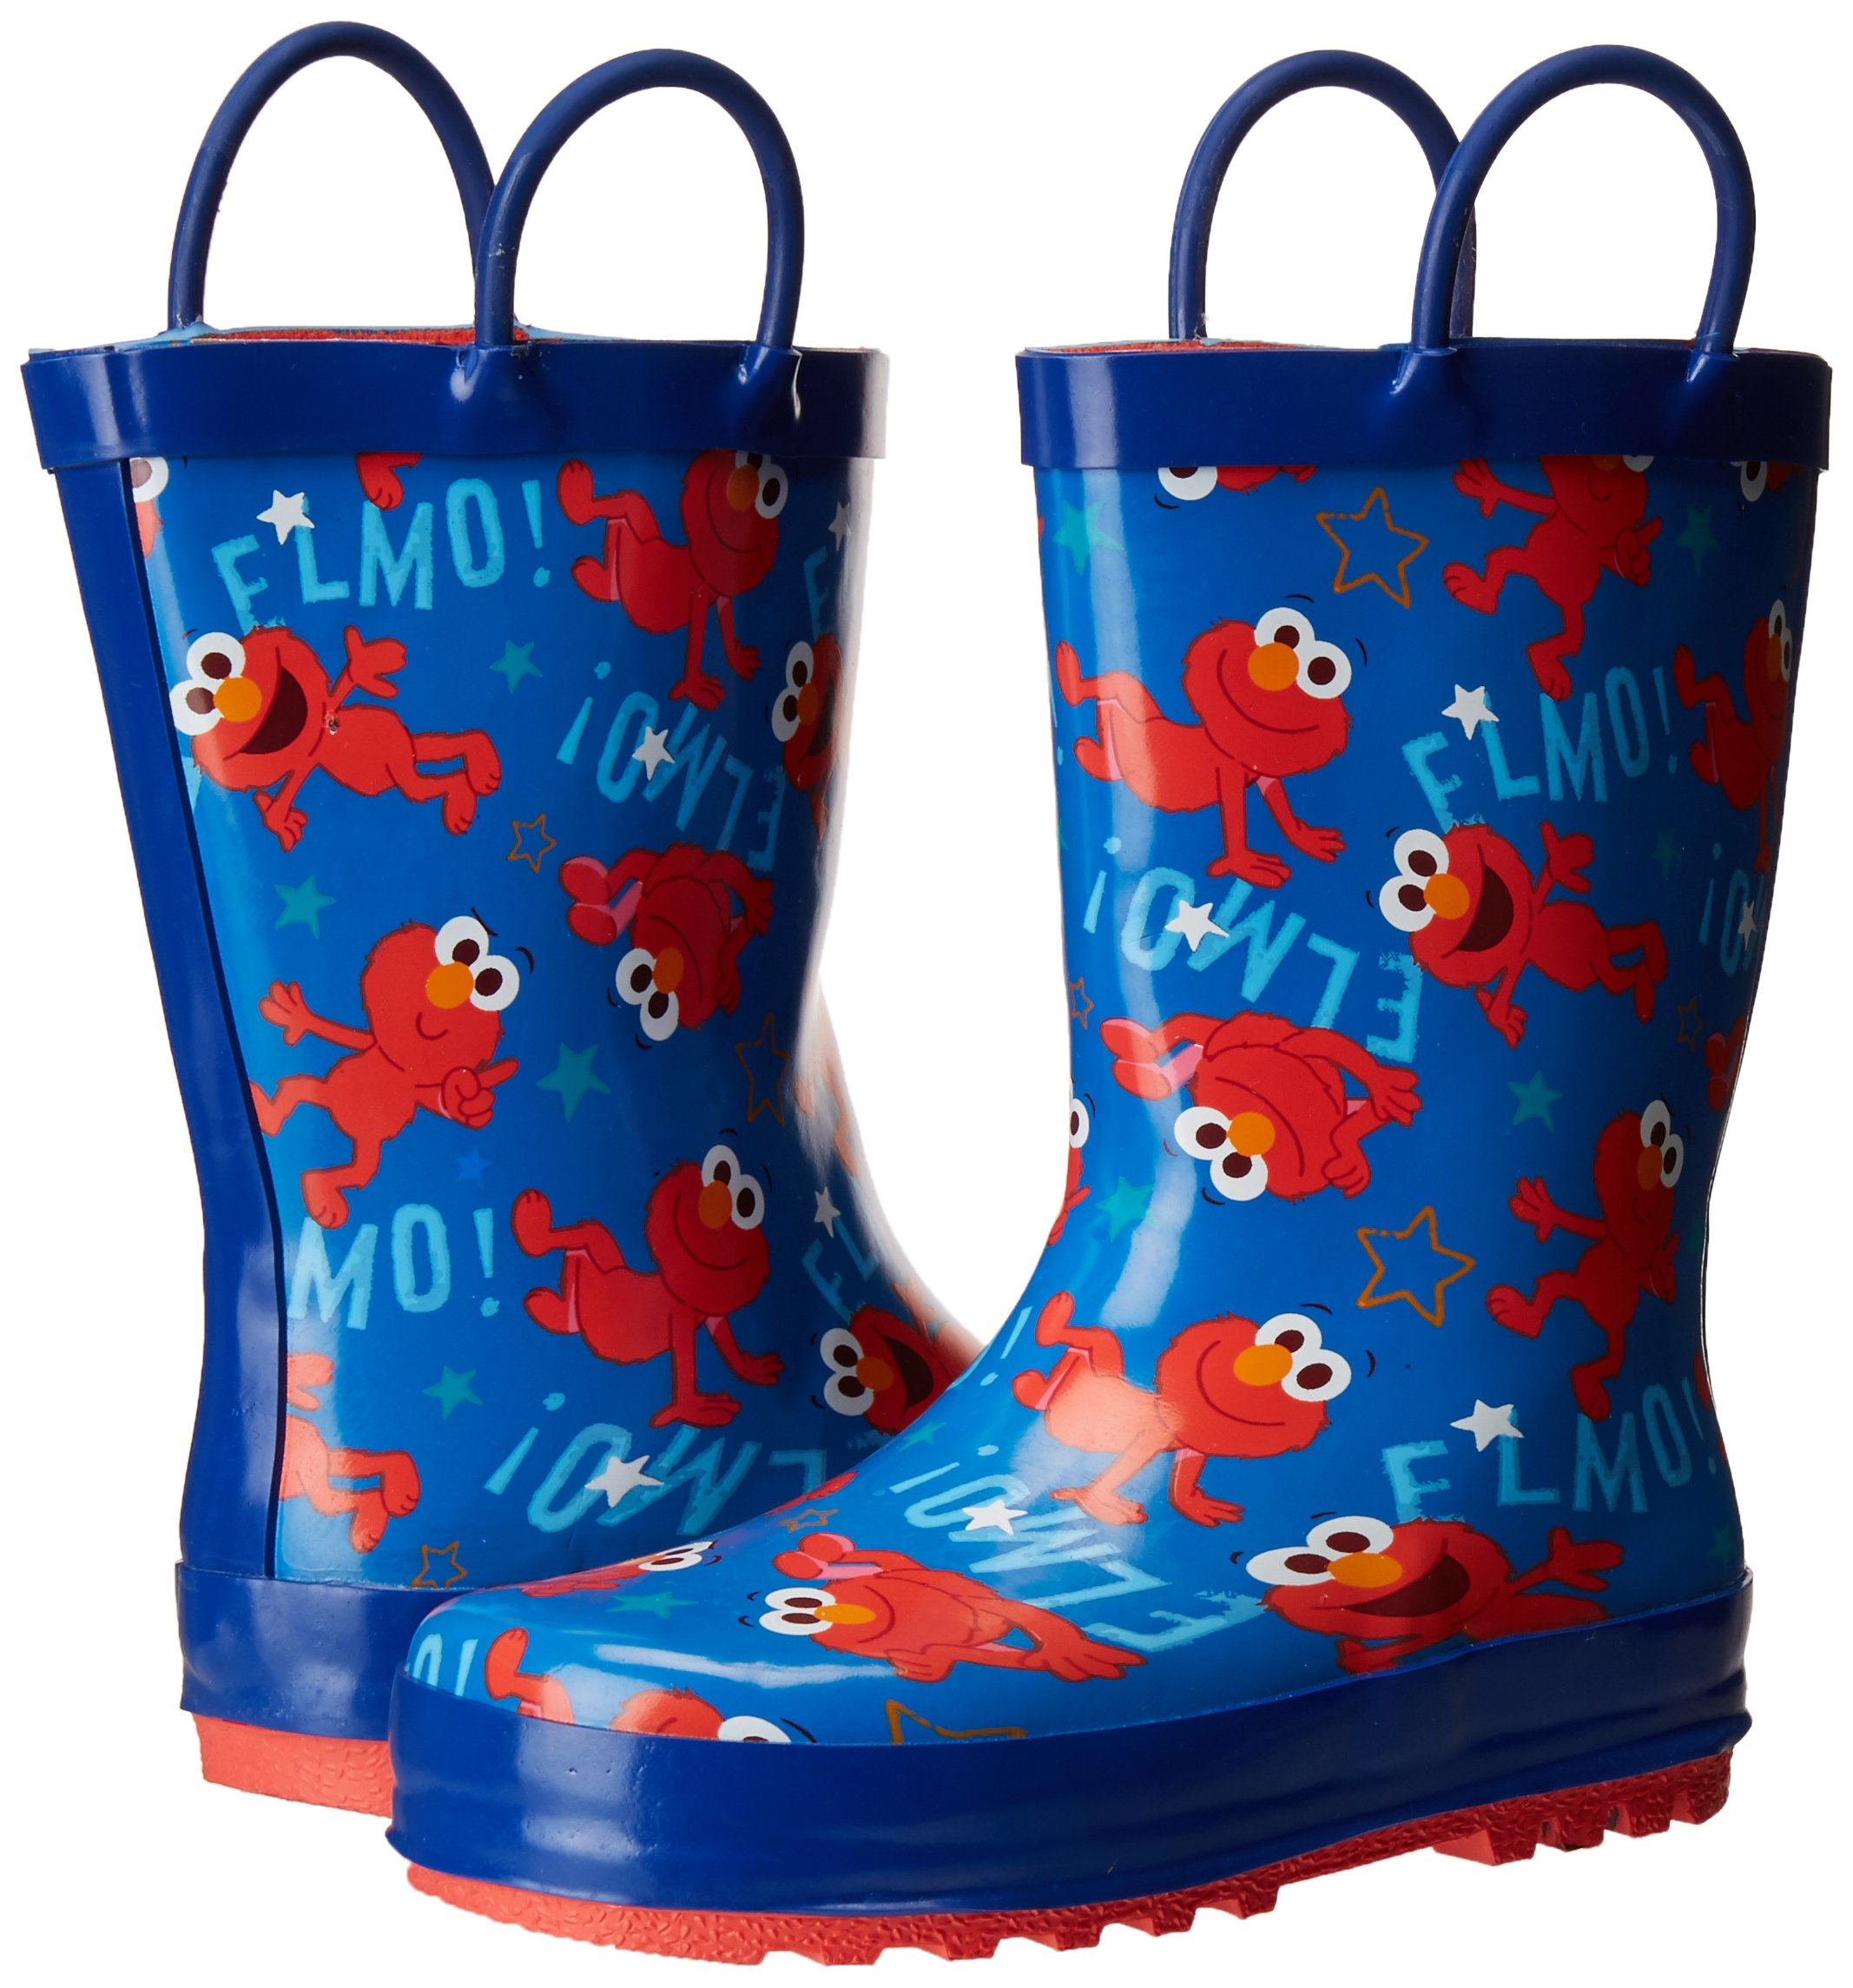 Sesame Street Boys' Kid's Character Licensed Rain Boot, Blue, Dual Shoe Size 7/8 Child US Toddler by Sesame Street (Image #6)